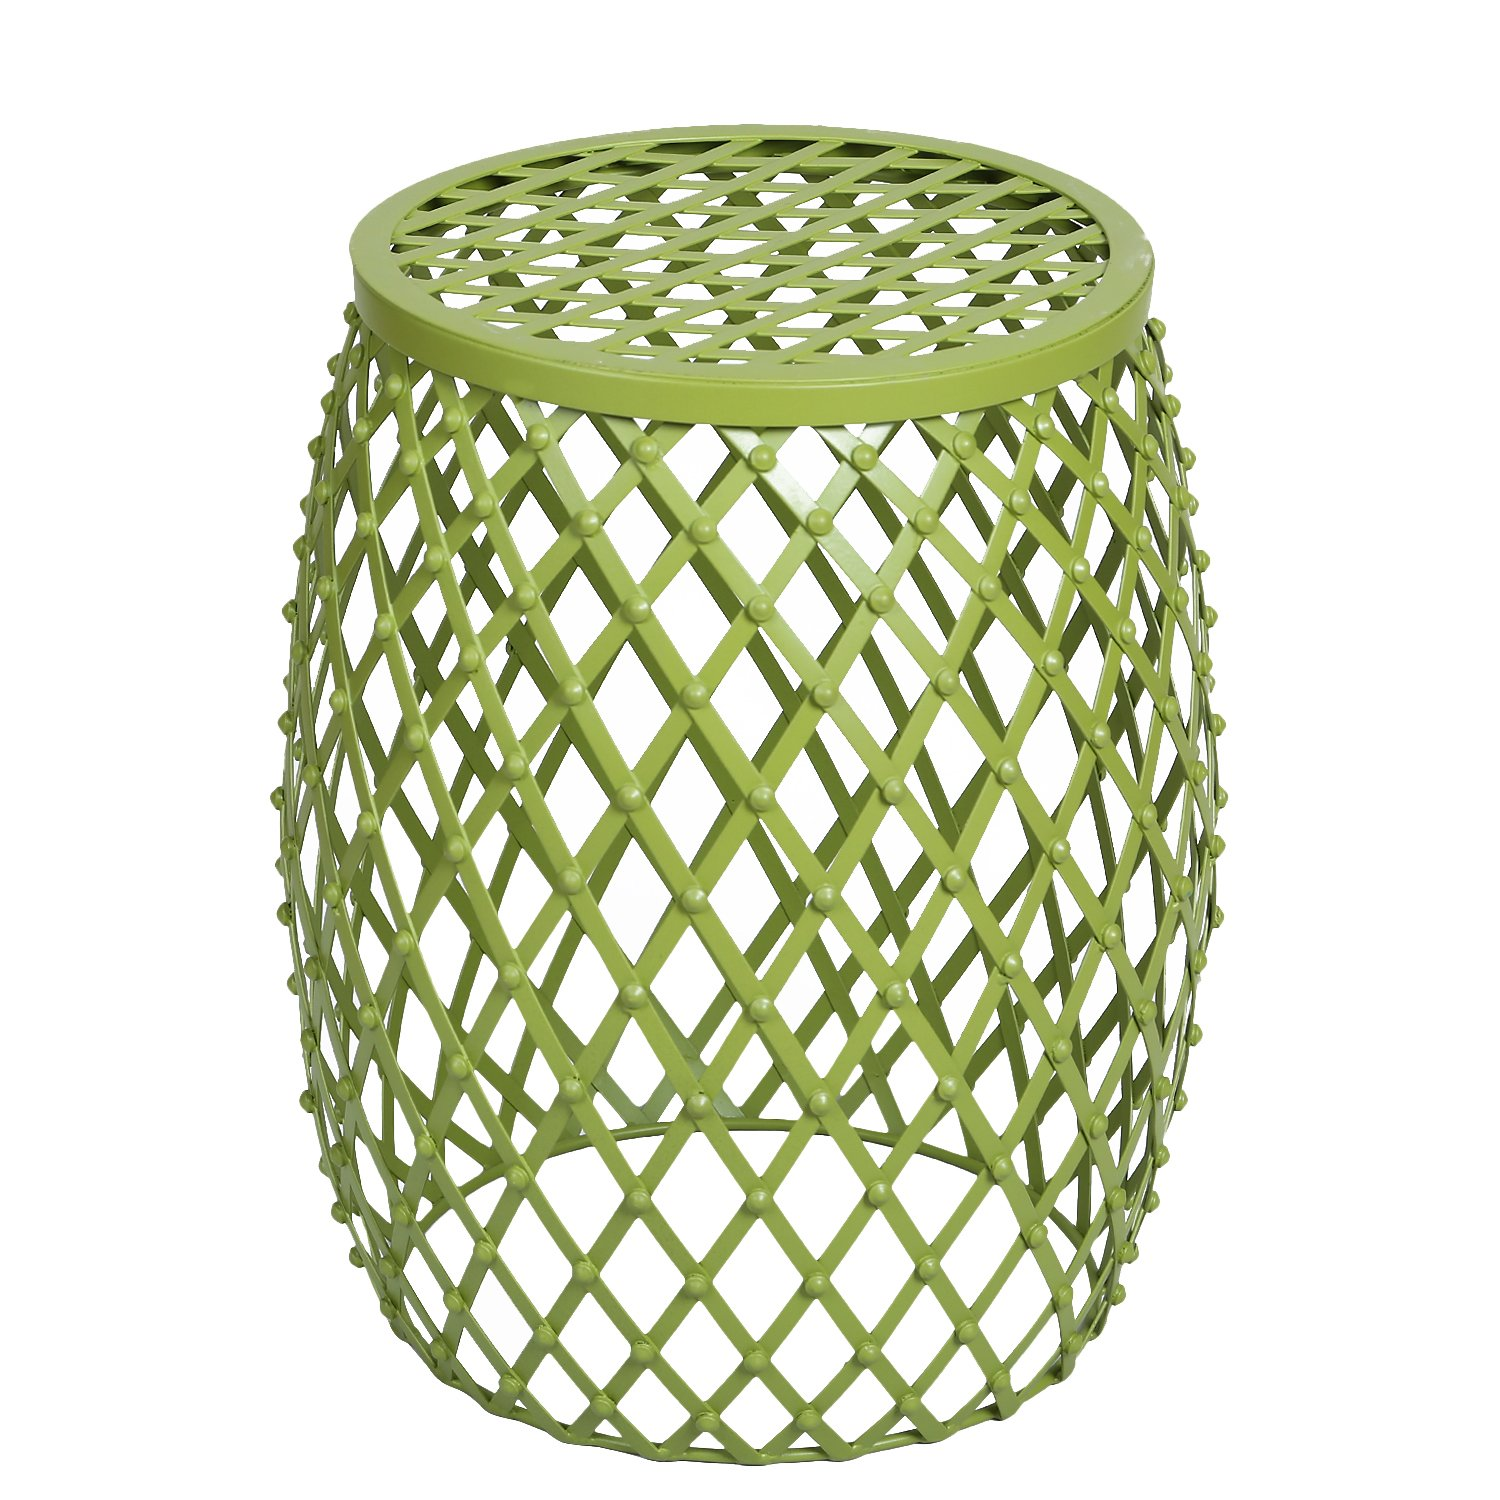 joveco stylish metal drum wire round end table side outdoor green sofa kitchen dining cherry corner accent white nesting tables modern bar height legs wood desk black with drawer